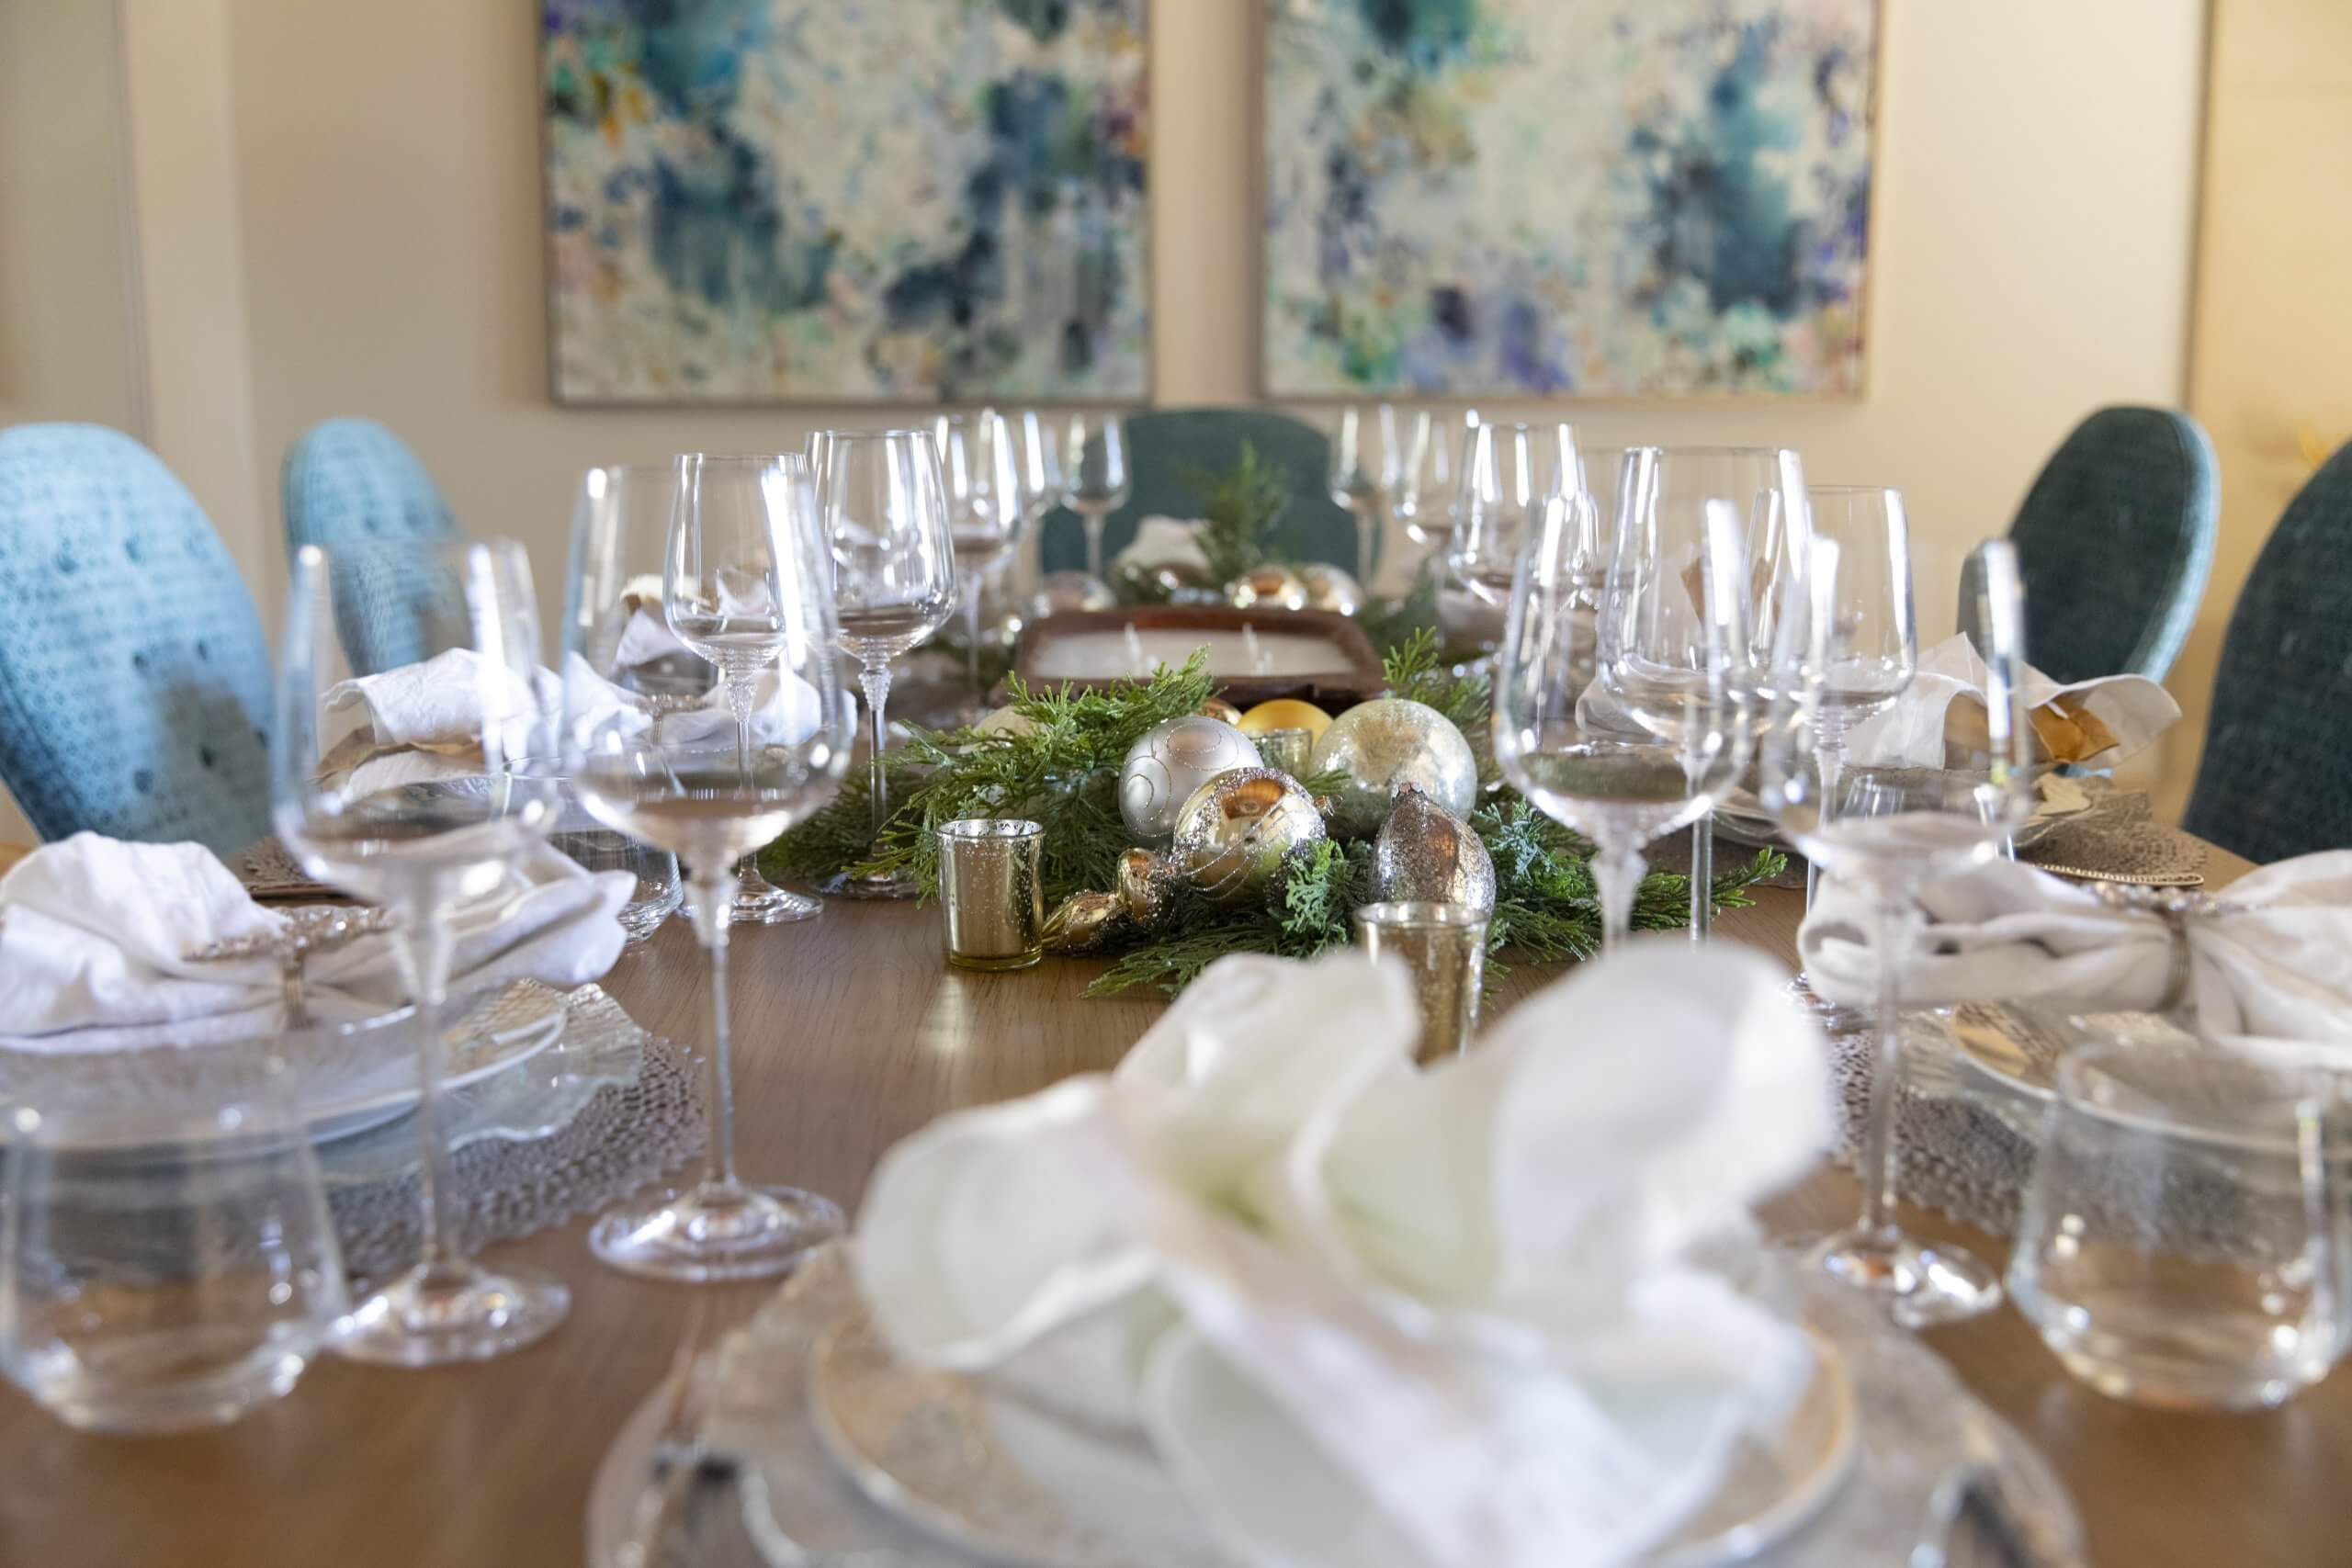 Blair Sheffield Christmas dining room table with 2 Casey Matthews paintings photo by Clay Greenhaw